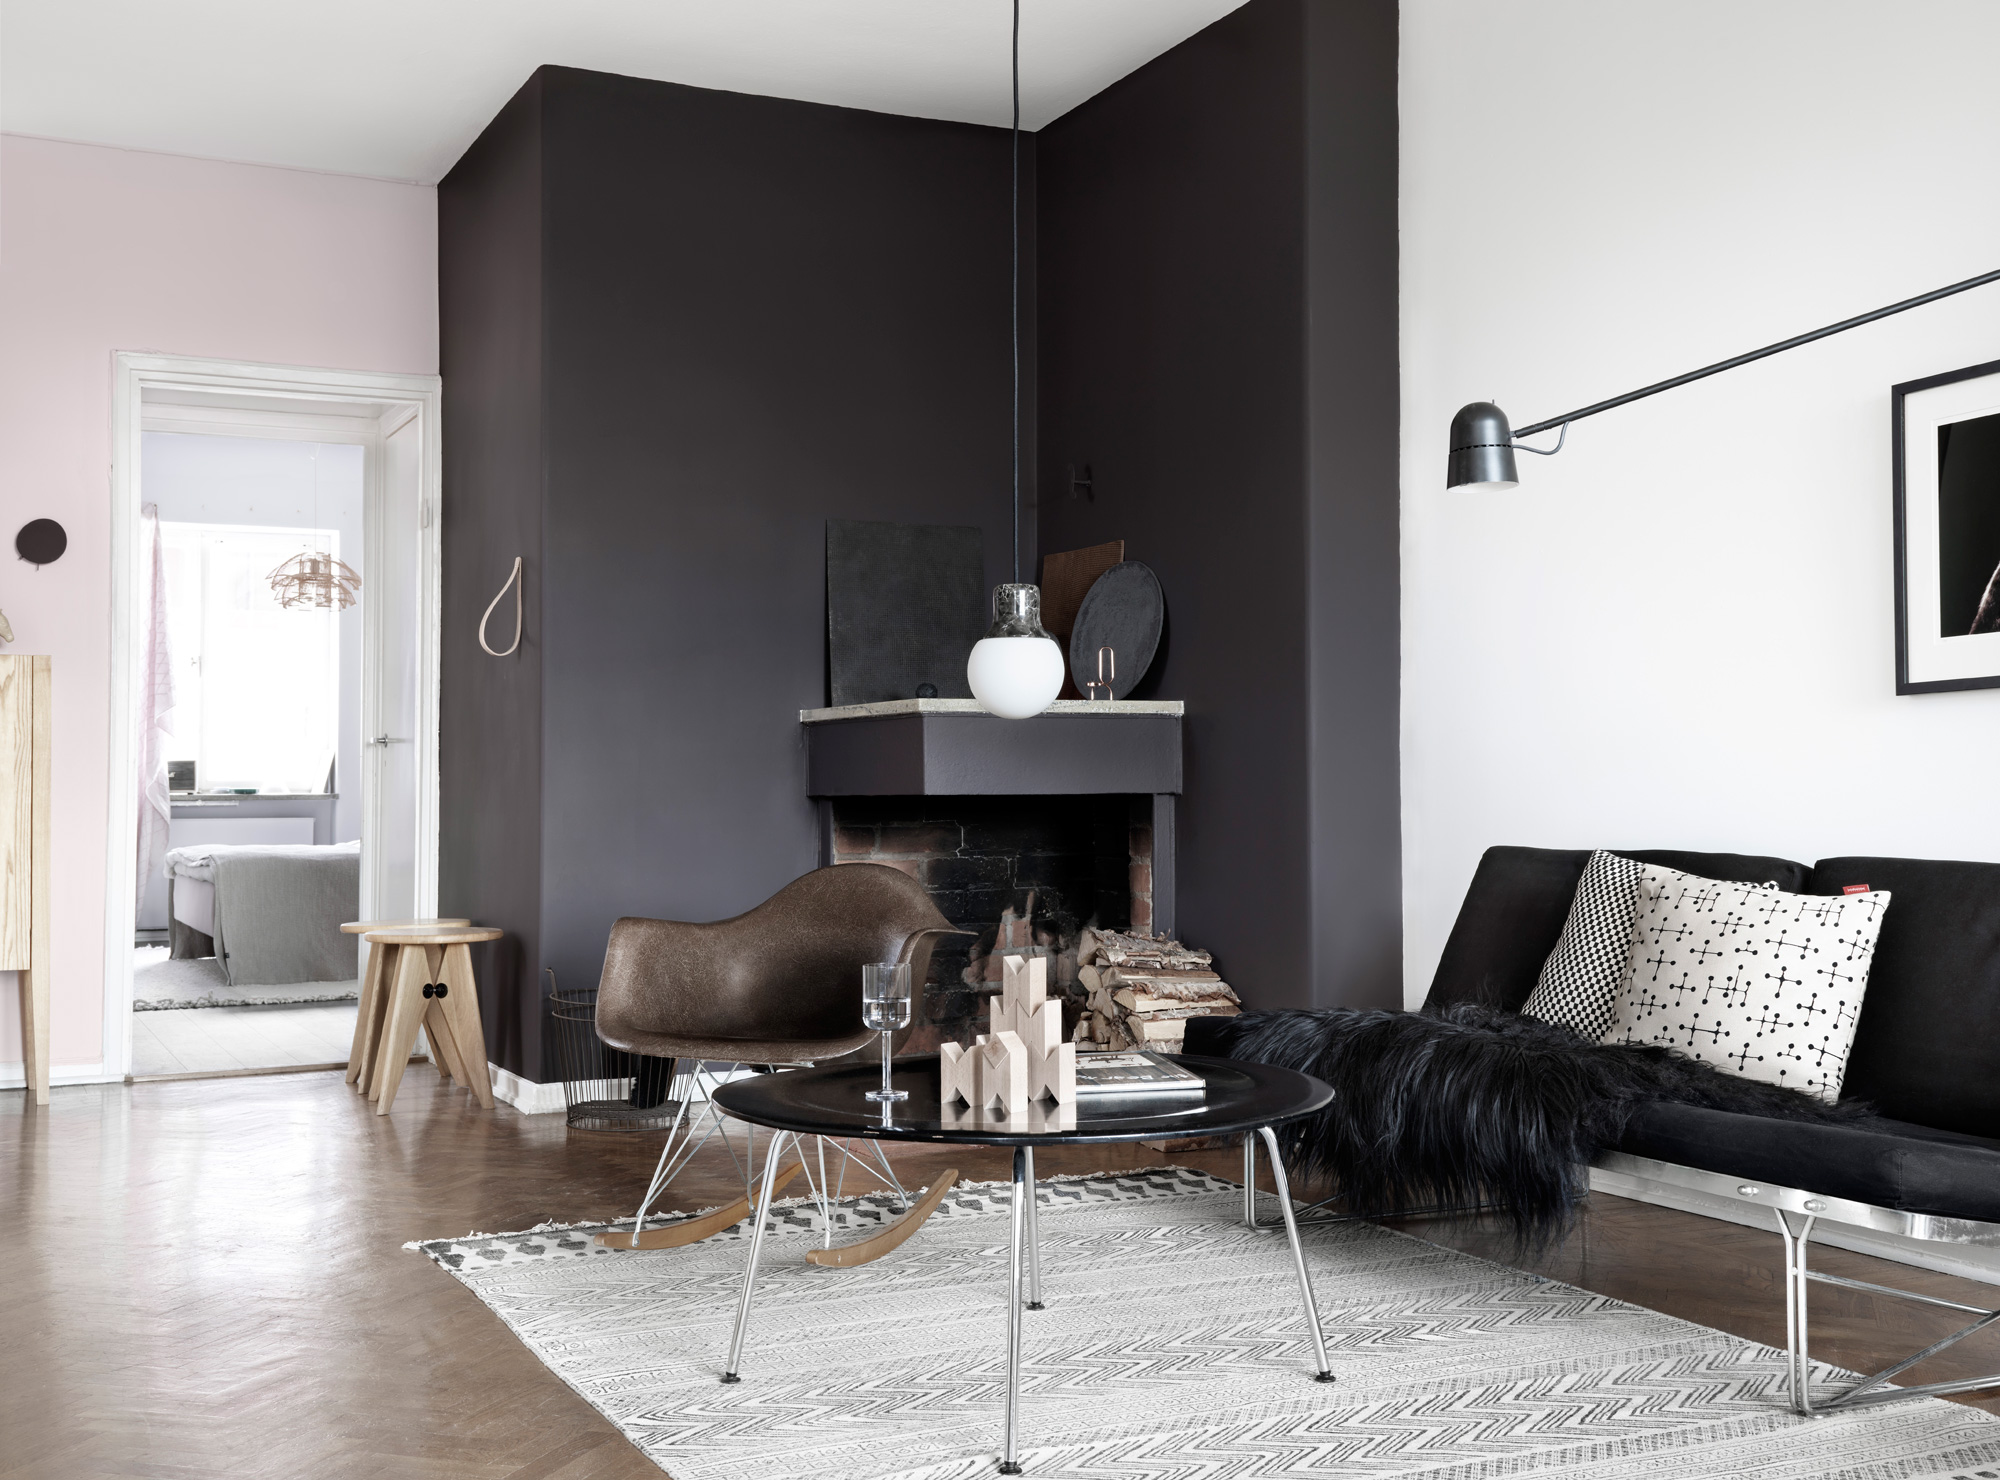 Jelanie blog - Black wall and a shade of pink 2 living room